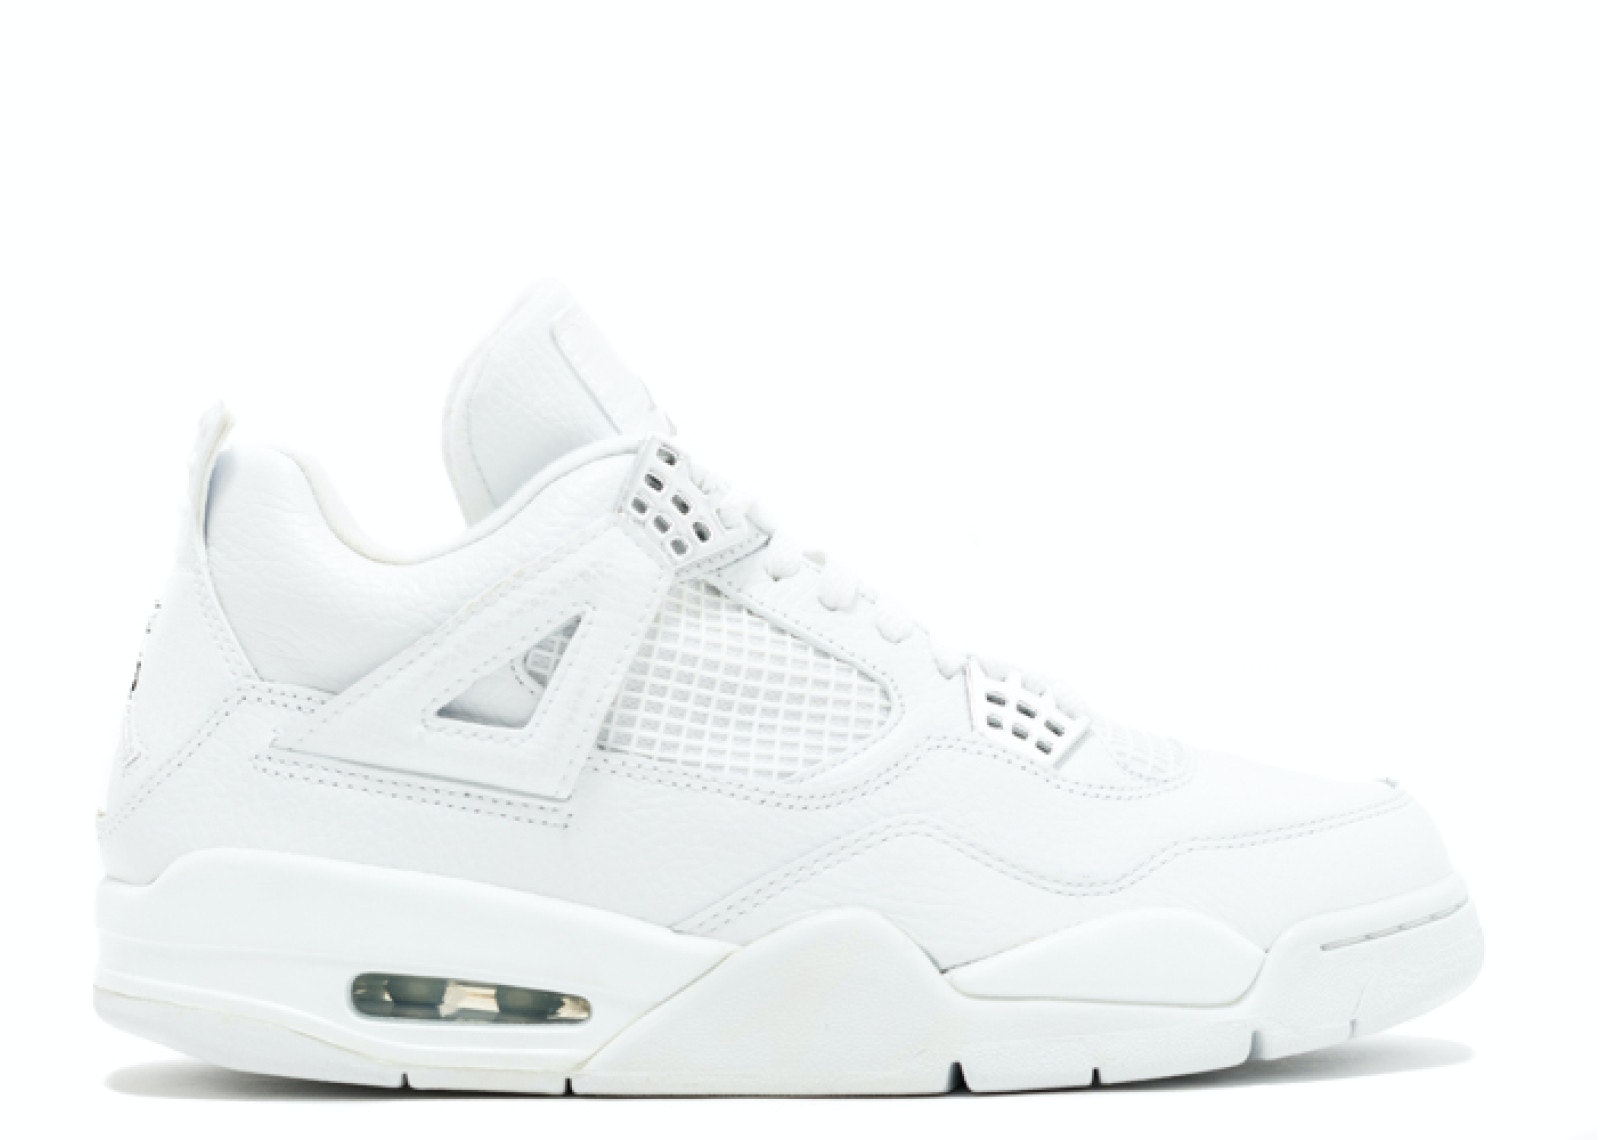 Jordan 4 Retro Pure Money (2006)